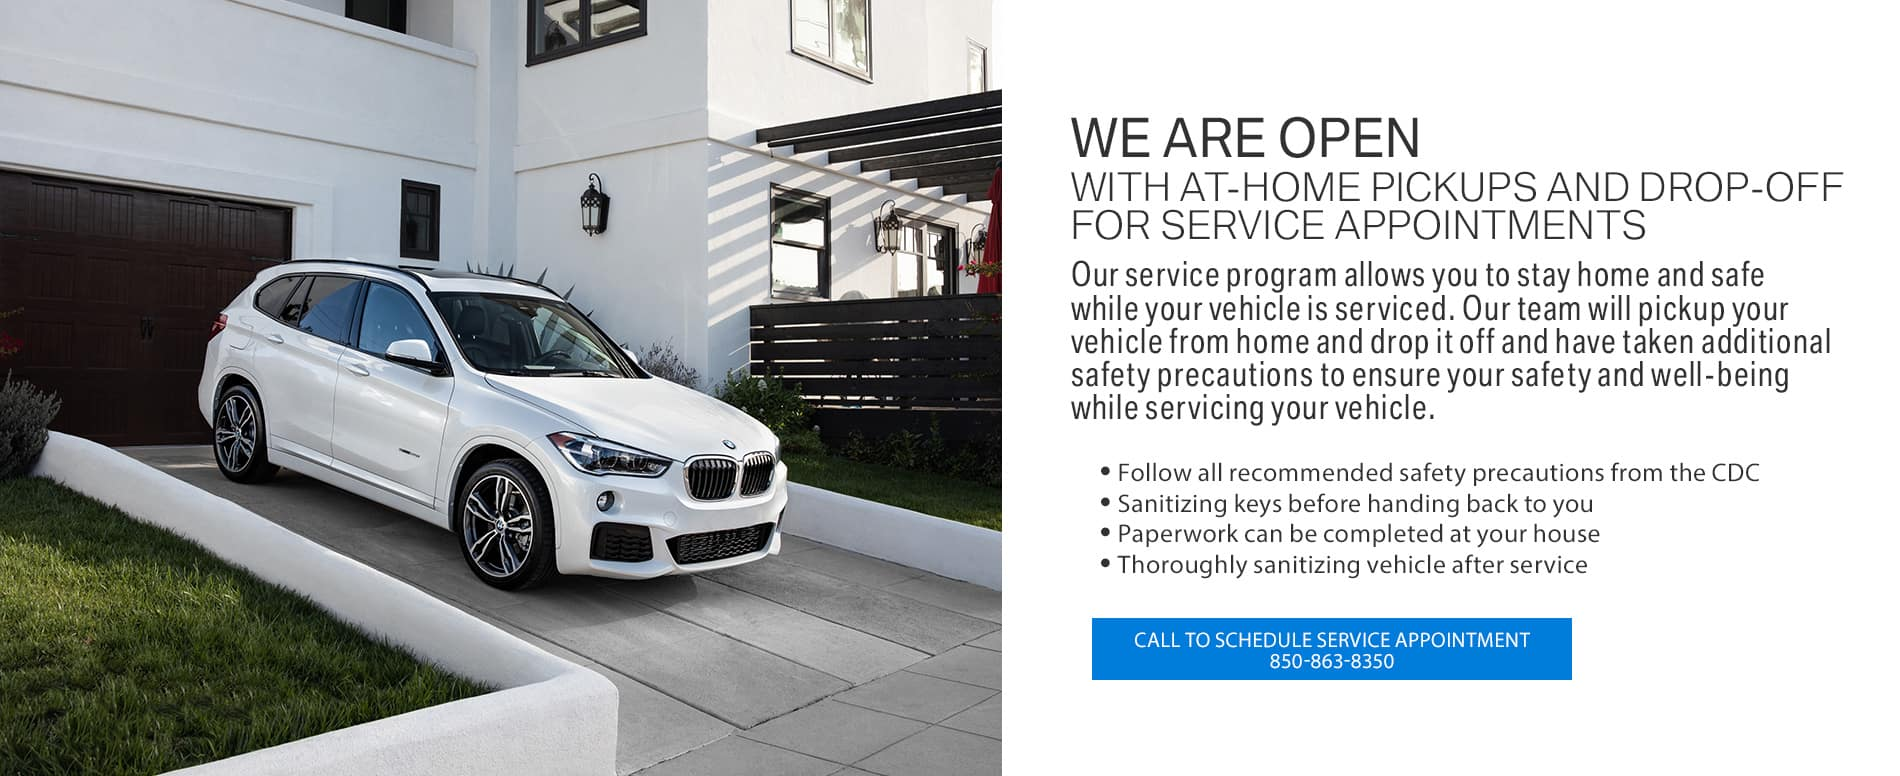 At-home pickups and drop-offs for service appointments at BMW of Fort Walton Beach